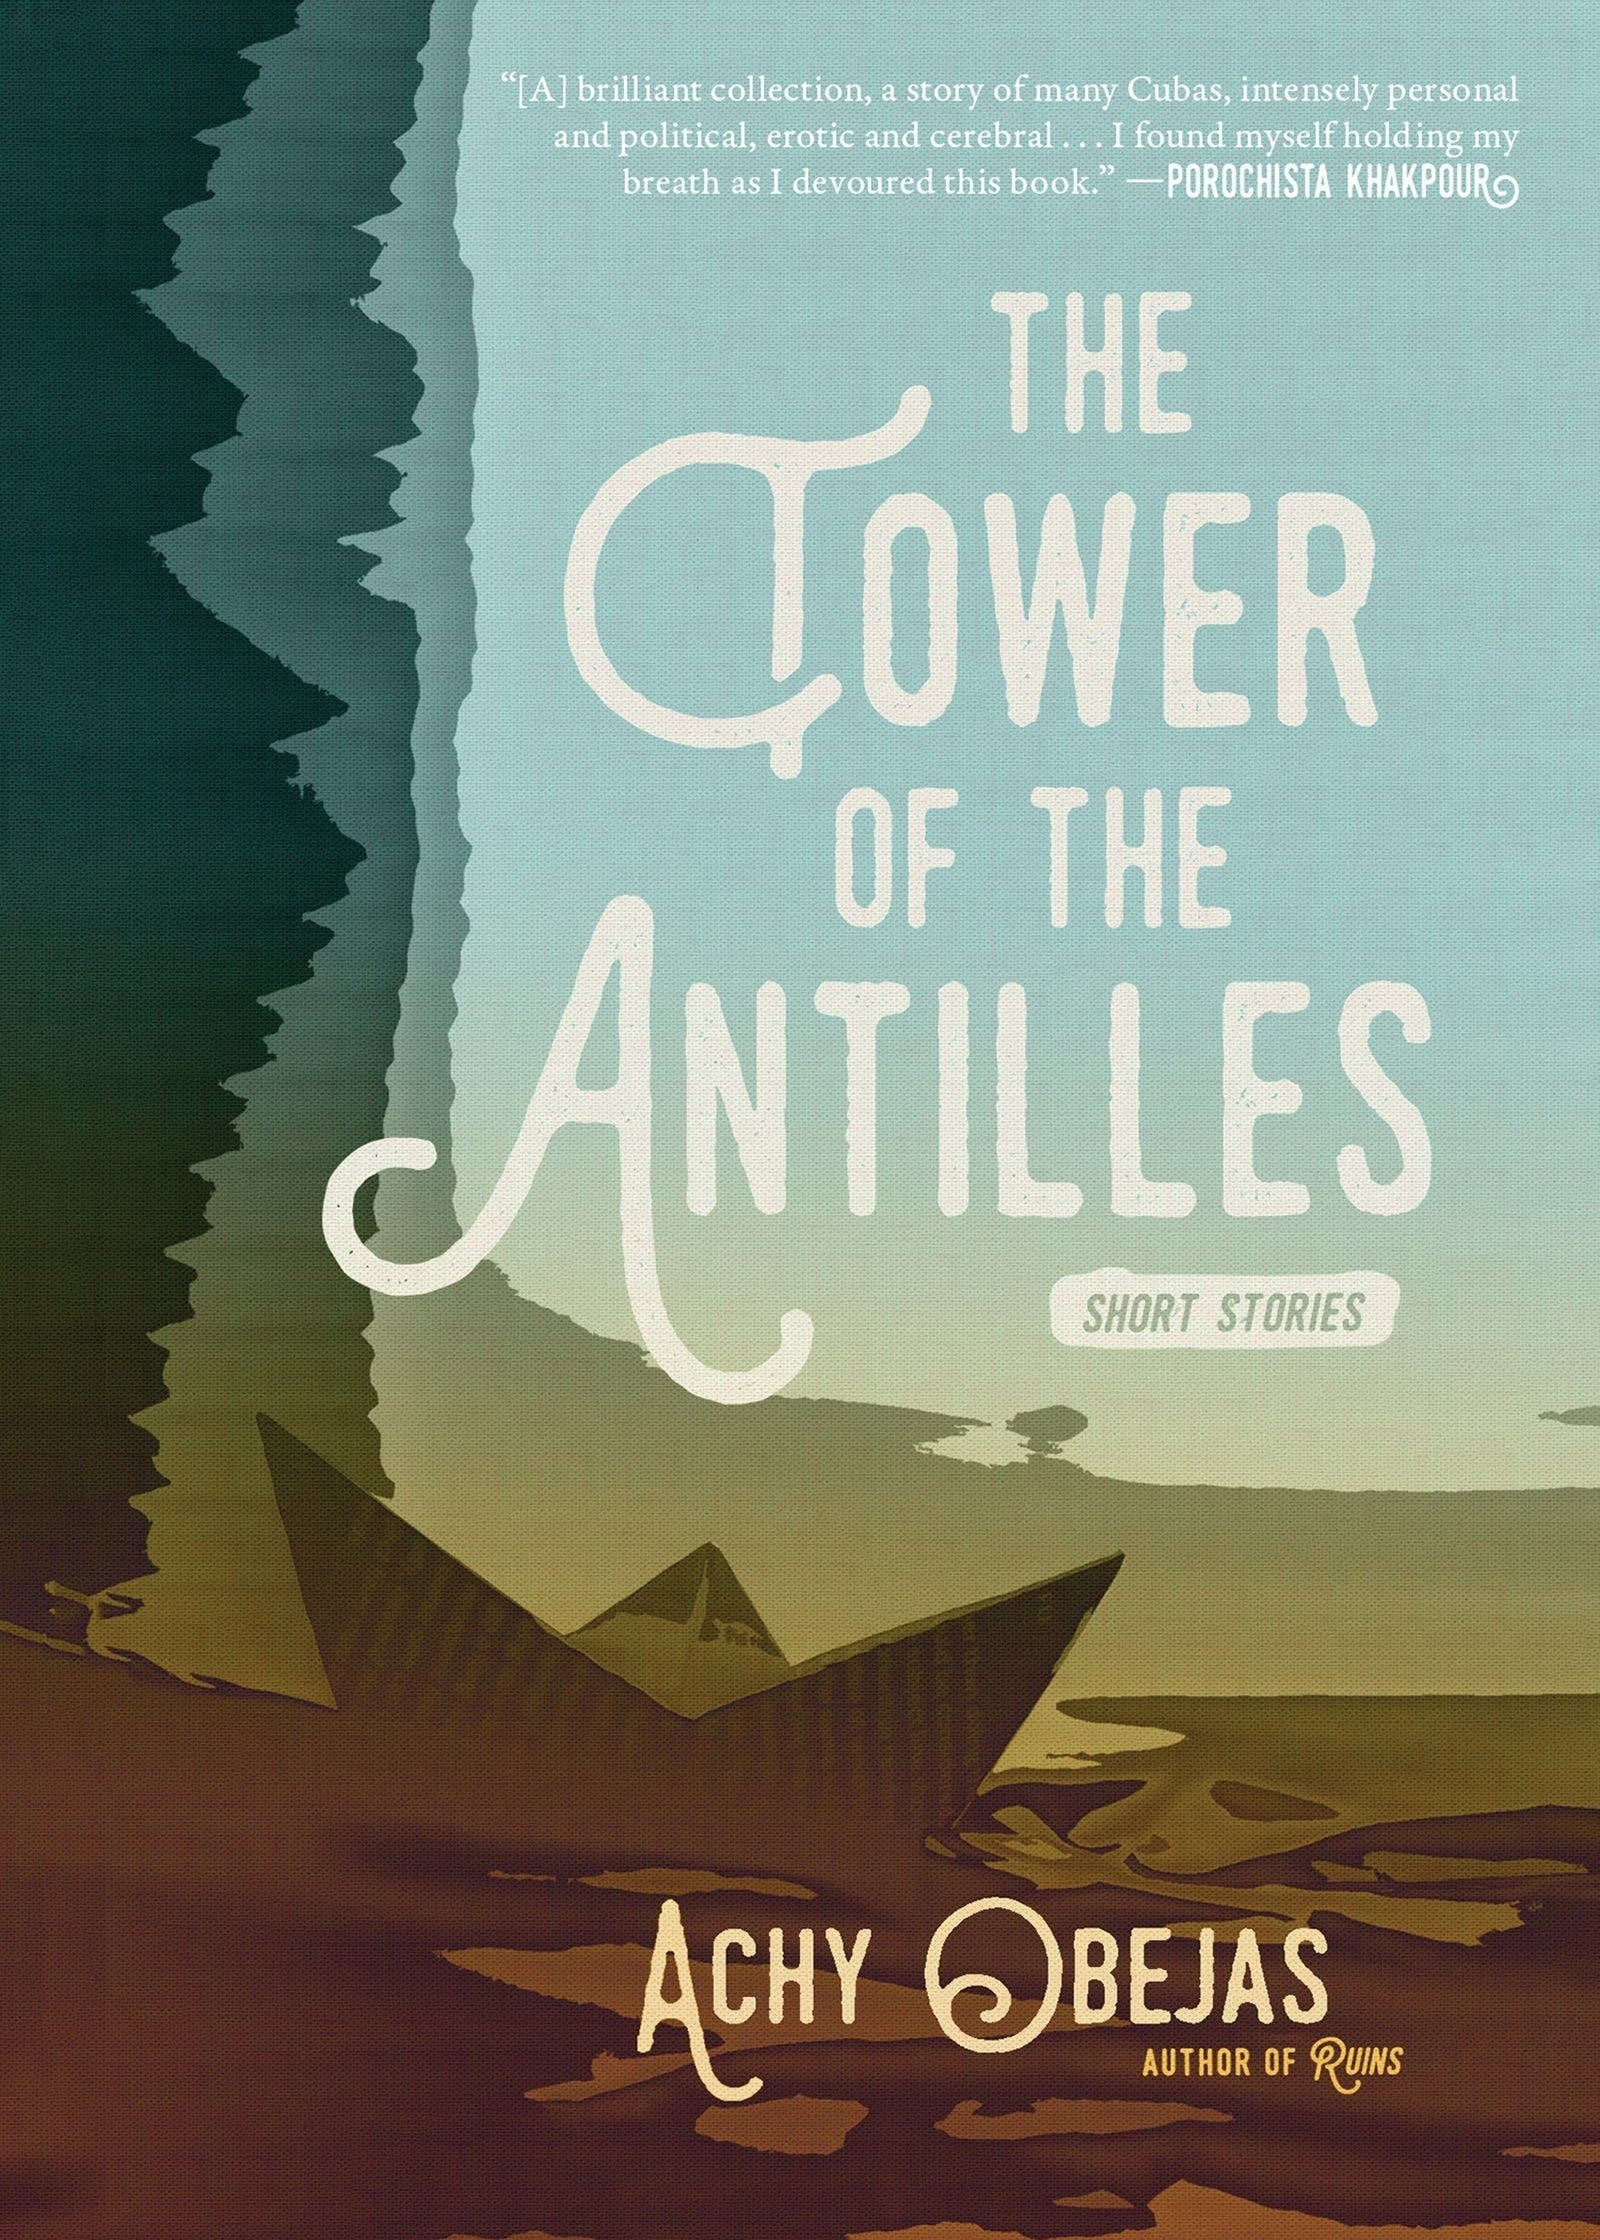 'The Tower of the Antilles' by Achy Obejas